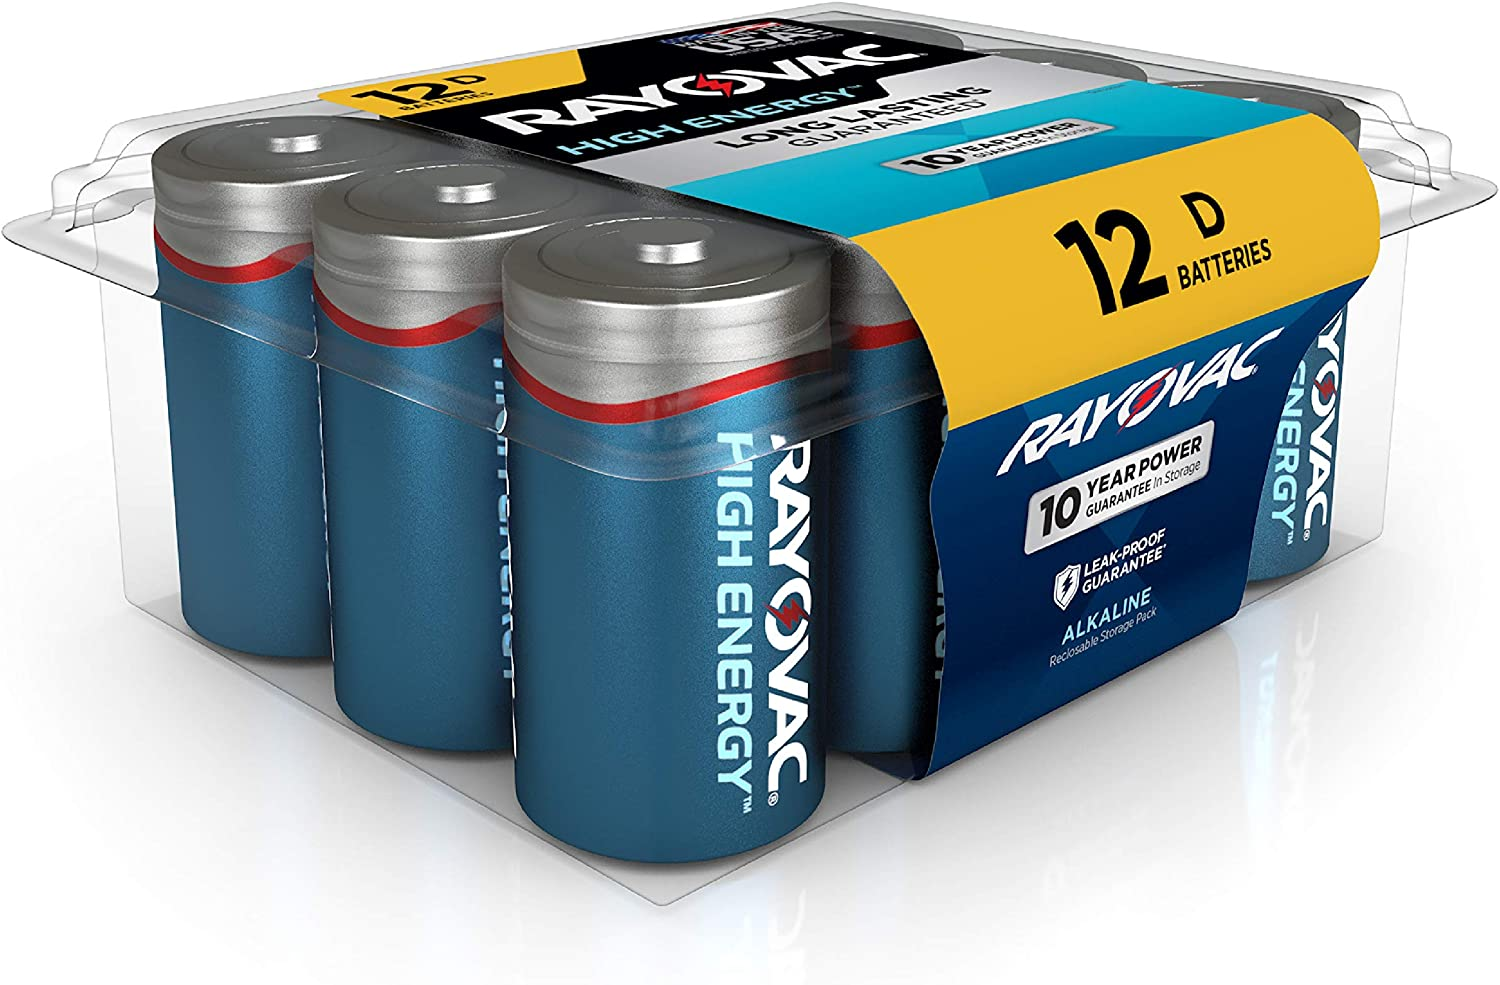 Rayovac D Batteries, Alkaline D Cell Batteries (12 Battery Count): Electronics